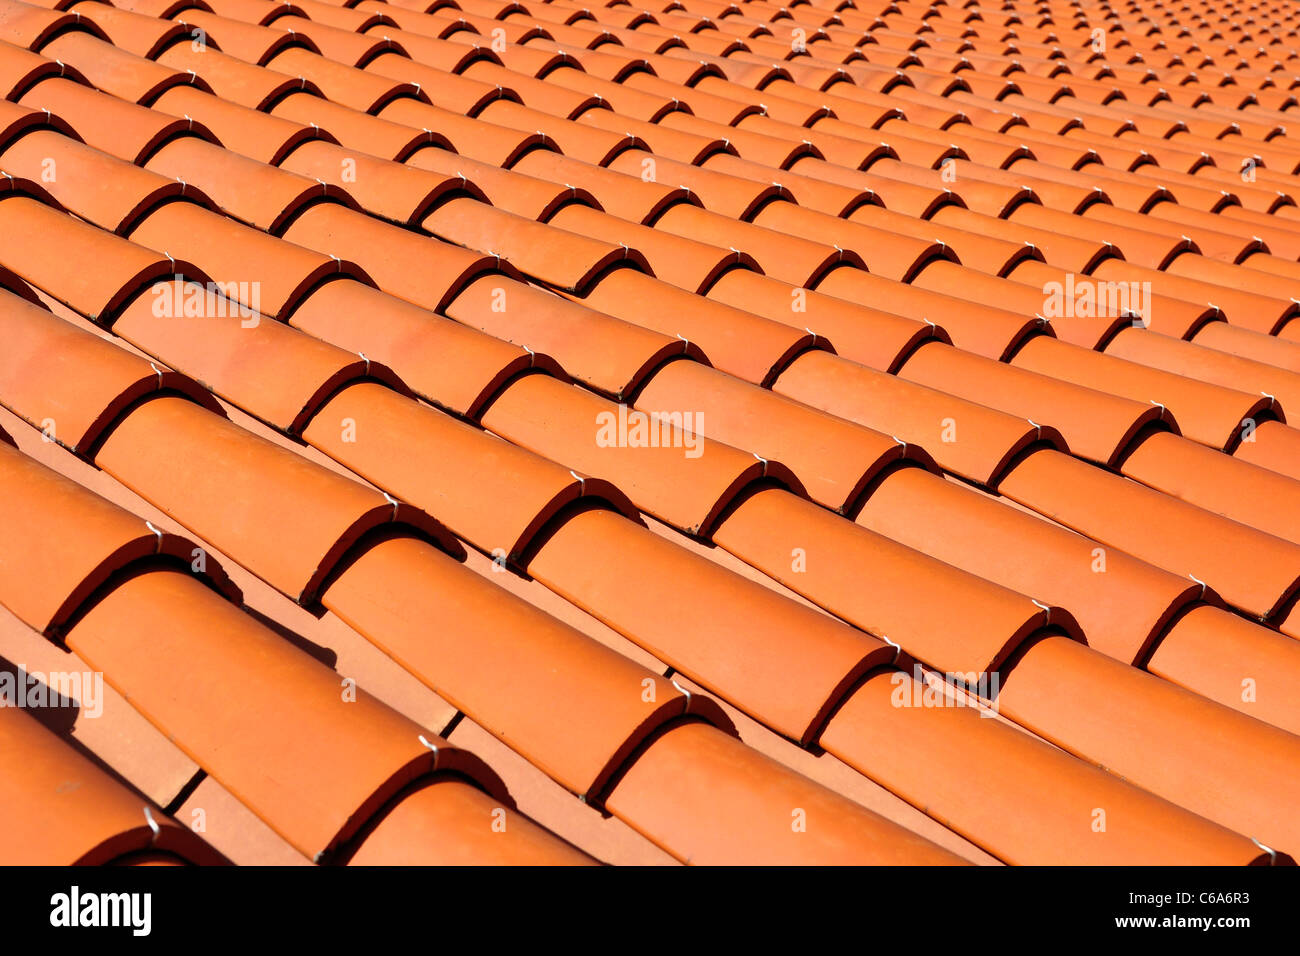 Orange roof tiles made from a ceramic material - Stock Image